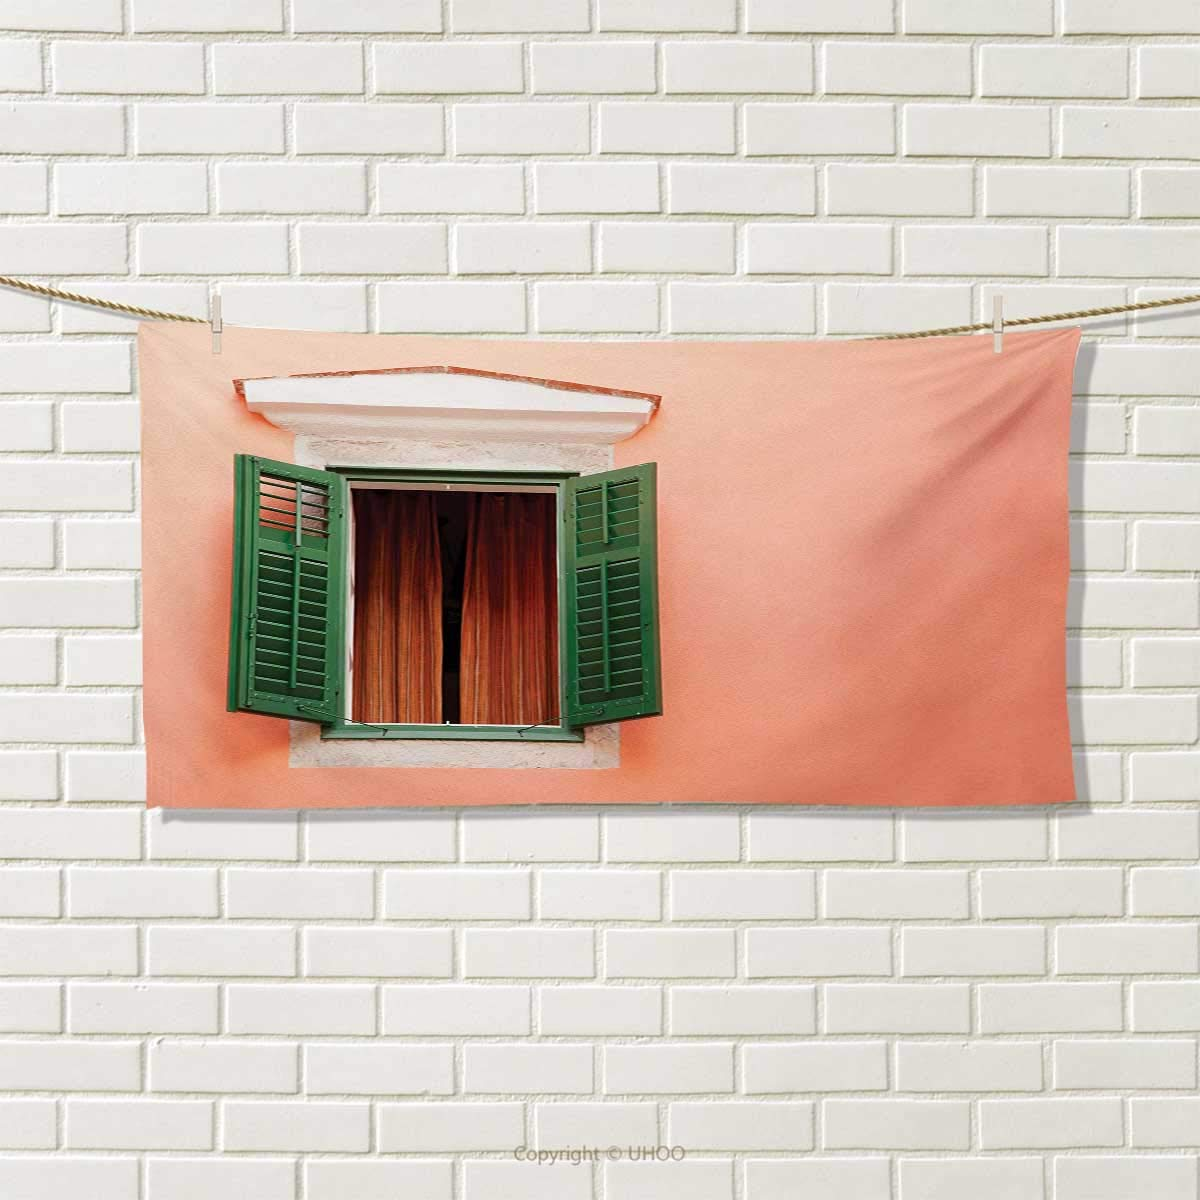 Chaneyhouse Country,Travel Towel,Mediterranean Style Image of Window and Shutters Old House Rural Rustic,100% Microfiber,Orange Green White Size: W 12'' x L 27.5''